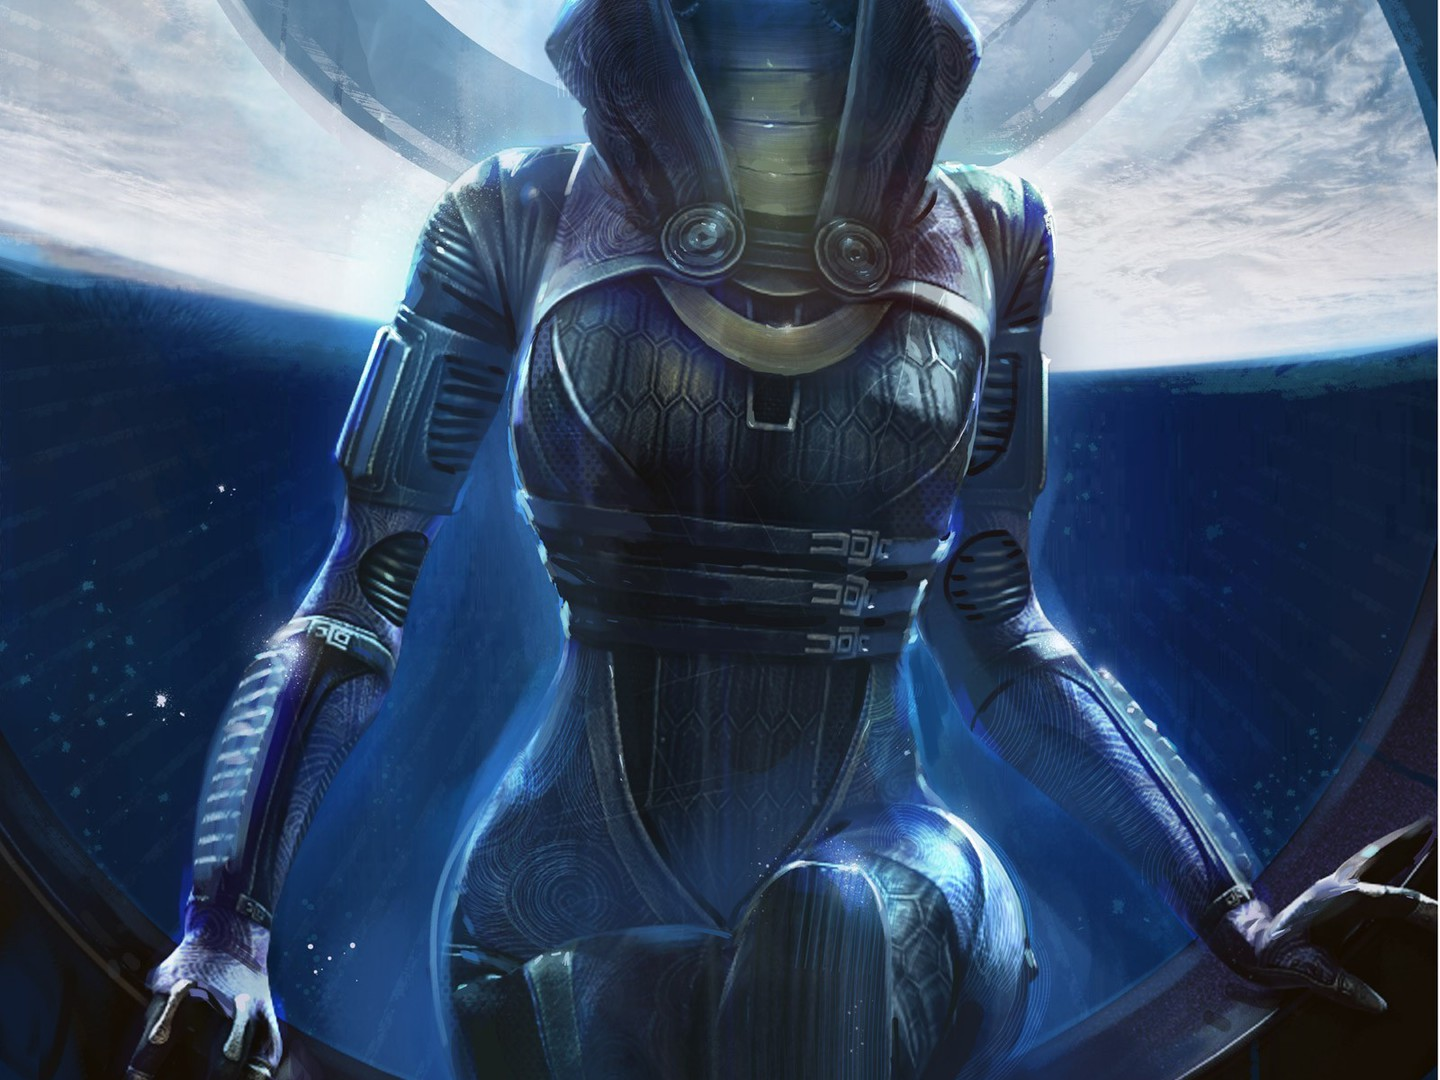 Mass Effect 3 Iphone Wallpaper Mass Effect 2 Tali Zorah Nar Rayya Wallpaper